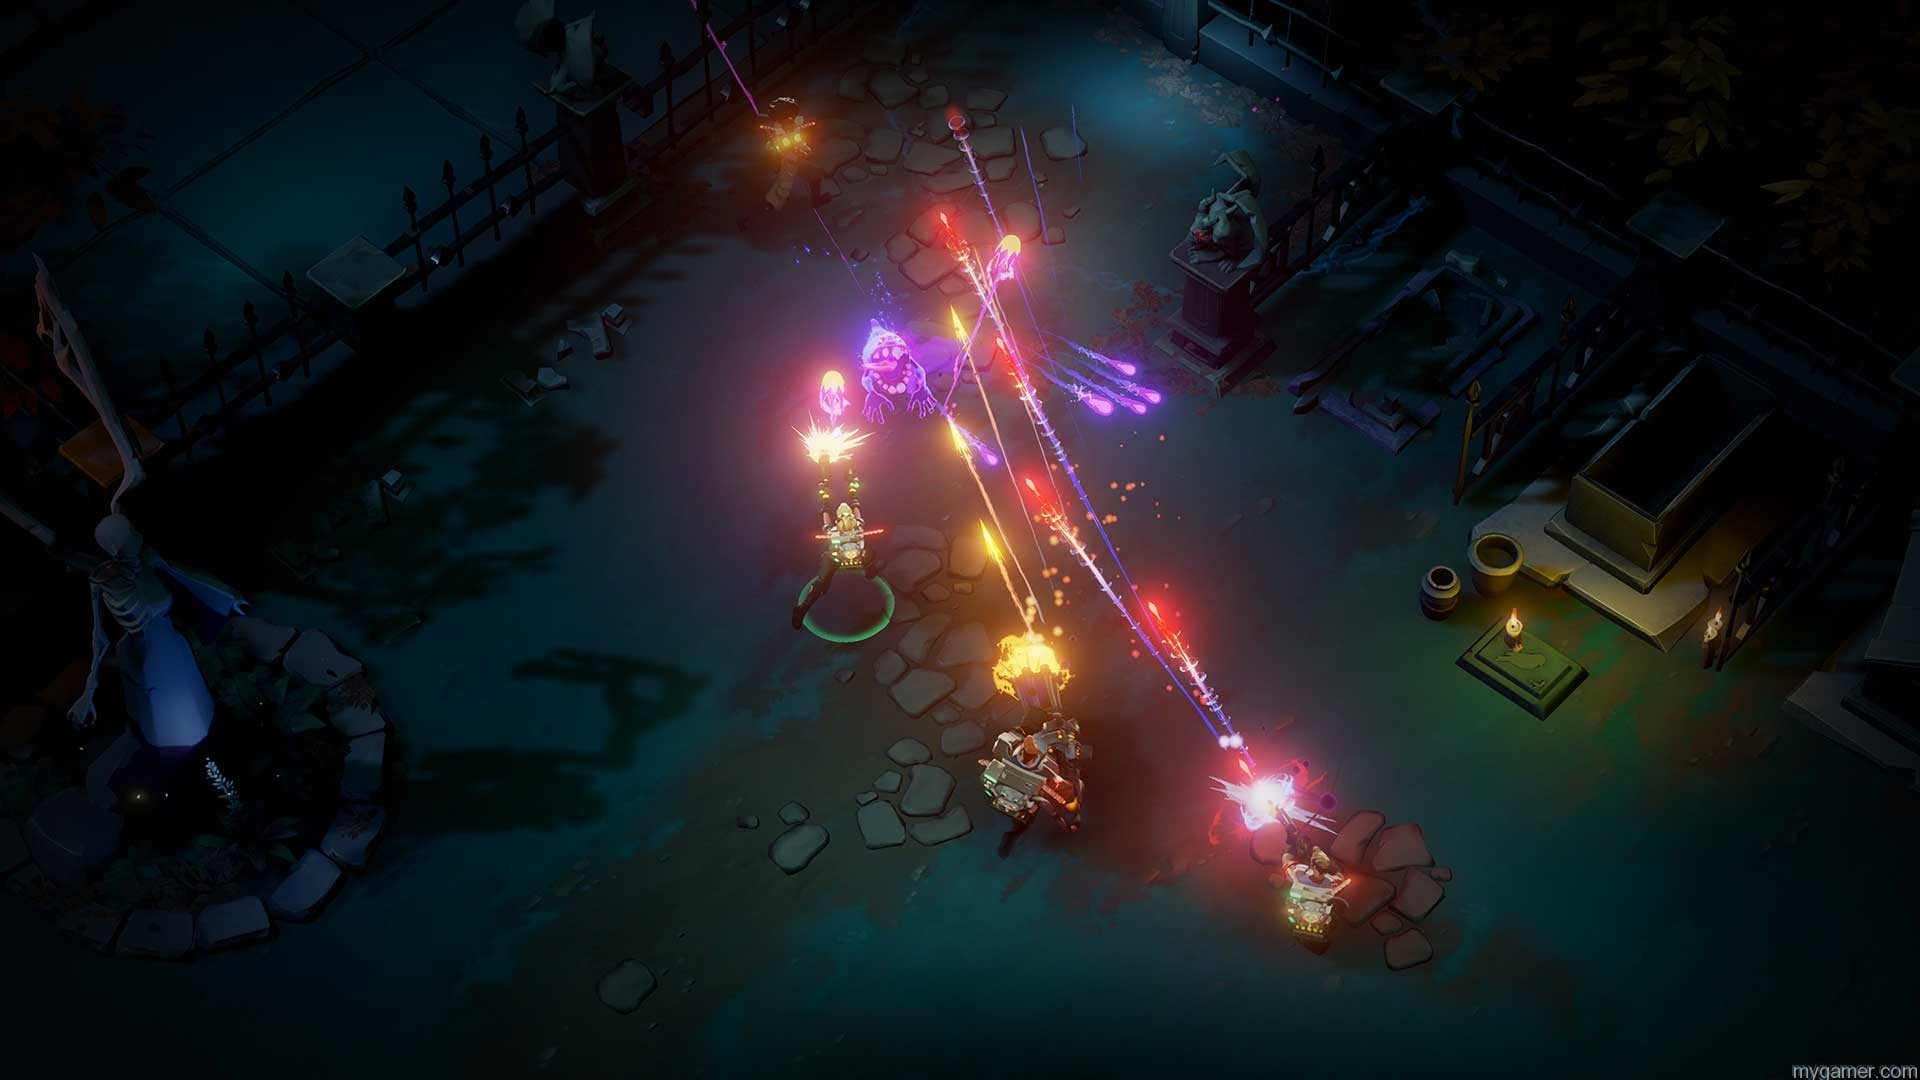 Ghostbusters_Game_2 Activision Releasing Two Ghostbuster Games This Summer - One Console and One Mobile Activision Releasing Two Ghostbuster Games This Summer – One Console and One Mobile Ghostbusters Game 2